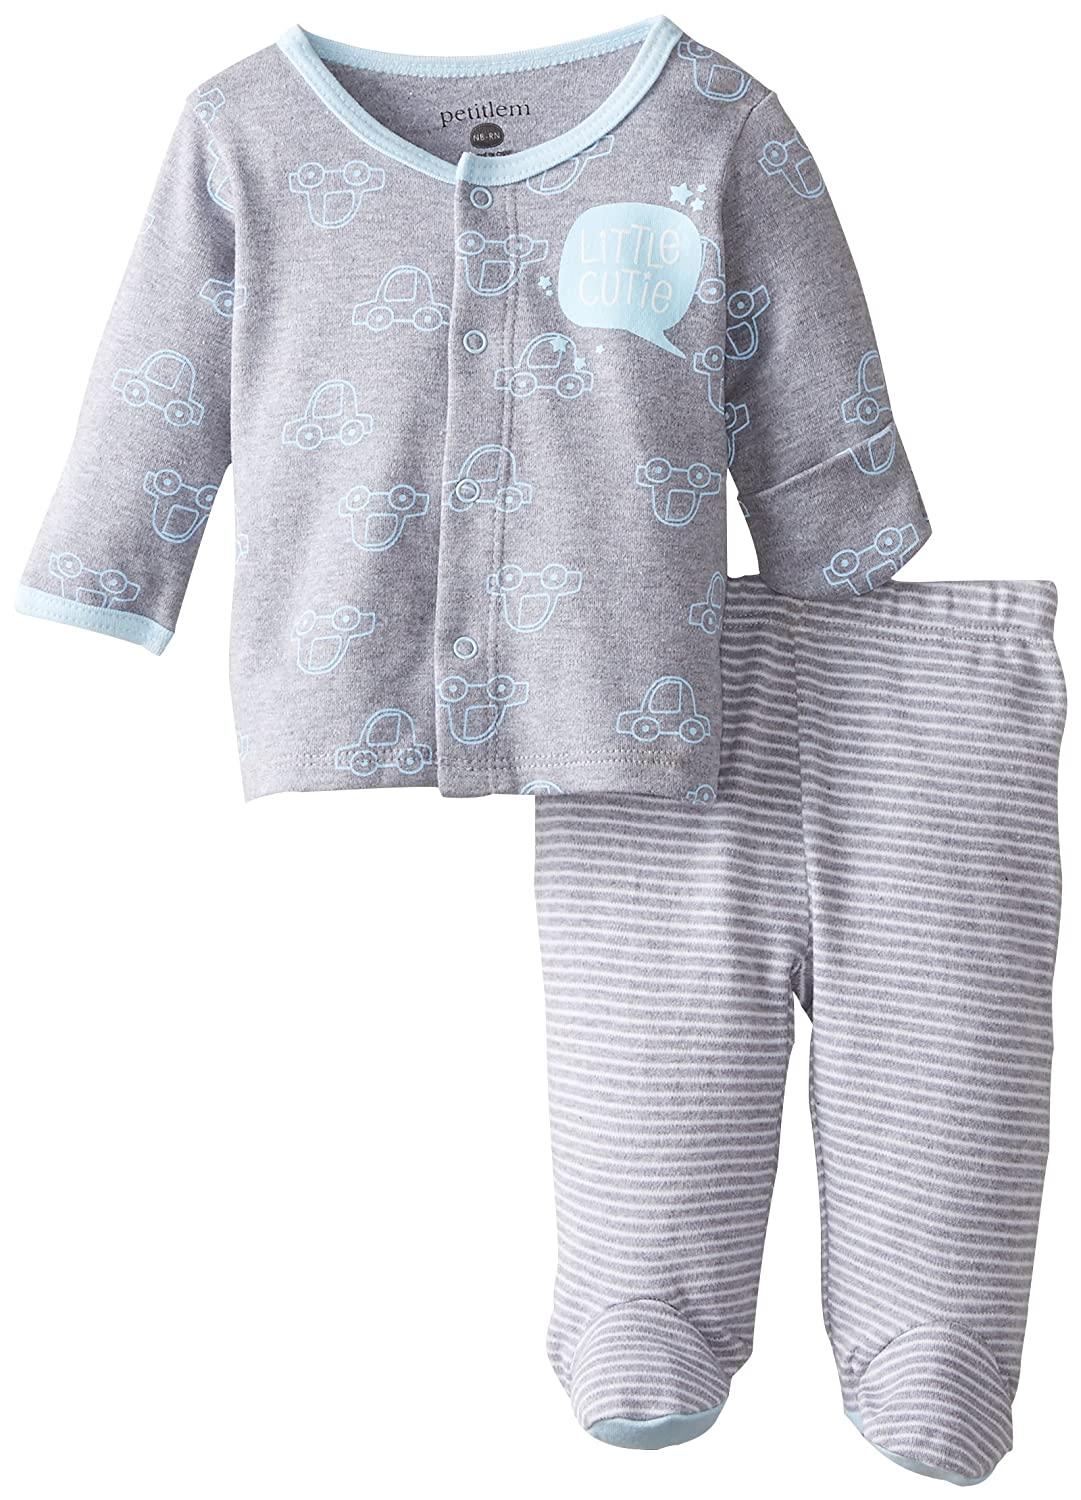 【60%OFF】 Petit Lem Newborn Petit baby-boys新生児My Little Little Car長袖上部と下部 Newborn A My Little Car B00WK497M6, Zenis(ゼニス):d1e0bd2a --- a0267596.xsph.ru